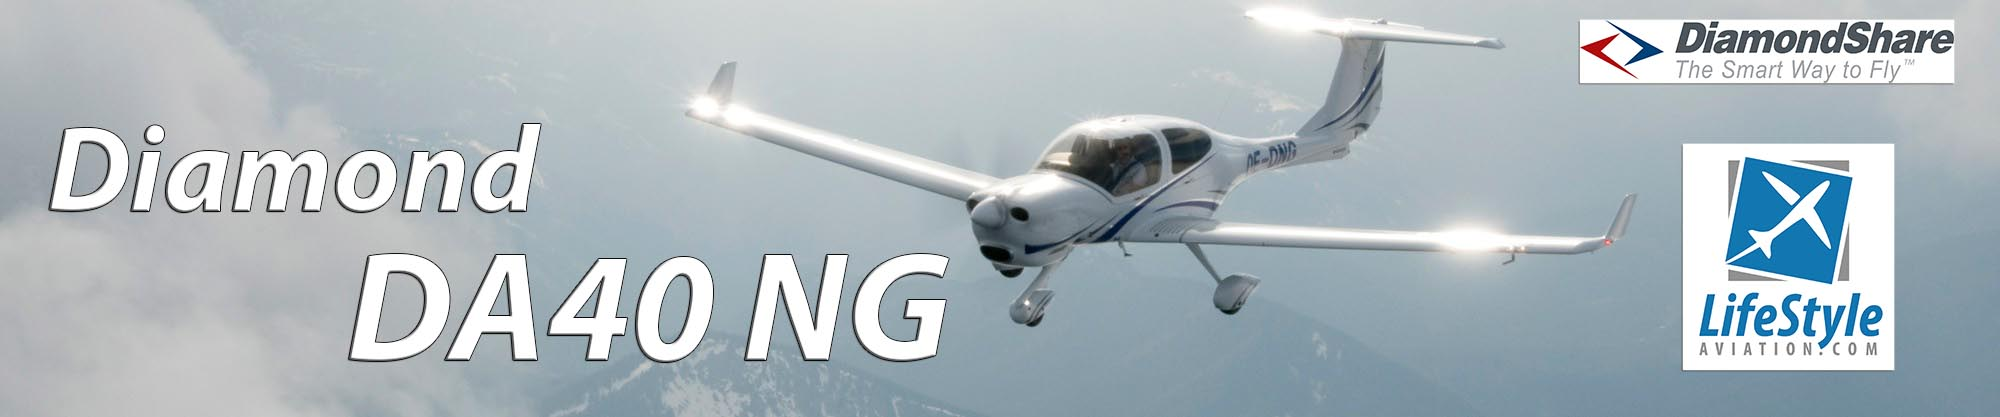 Featured Aircraft: DA40 NG